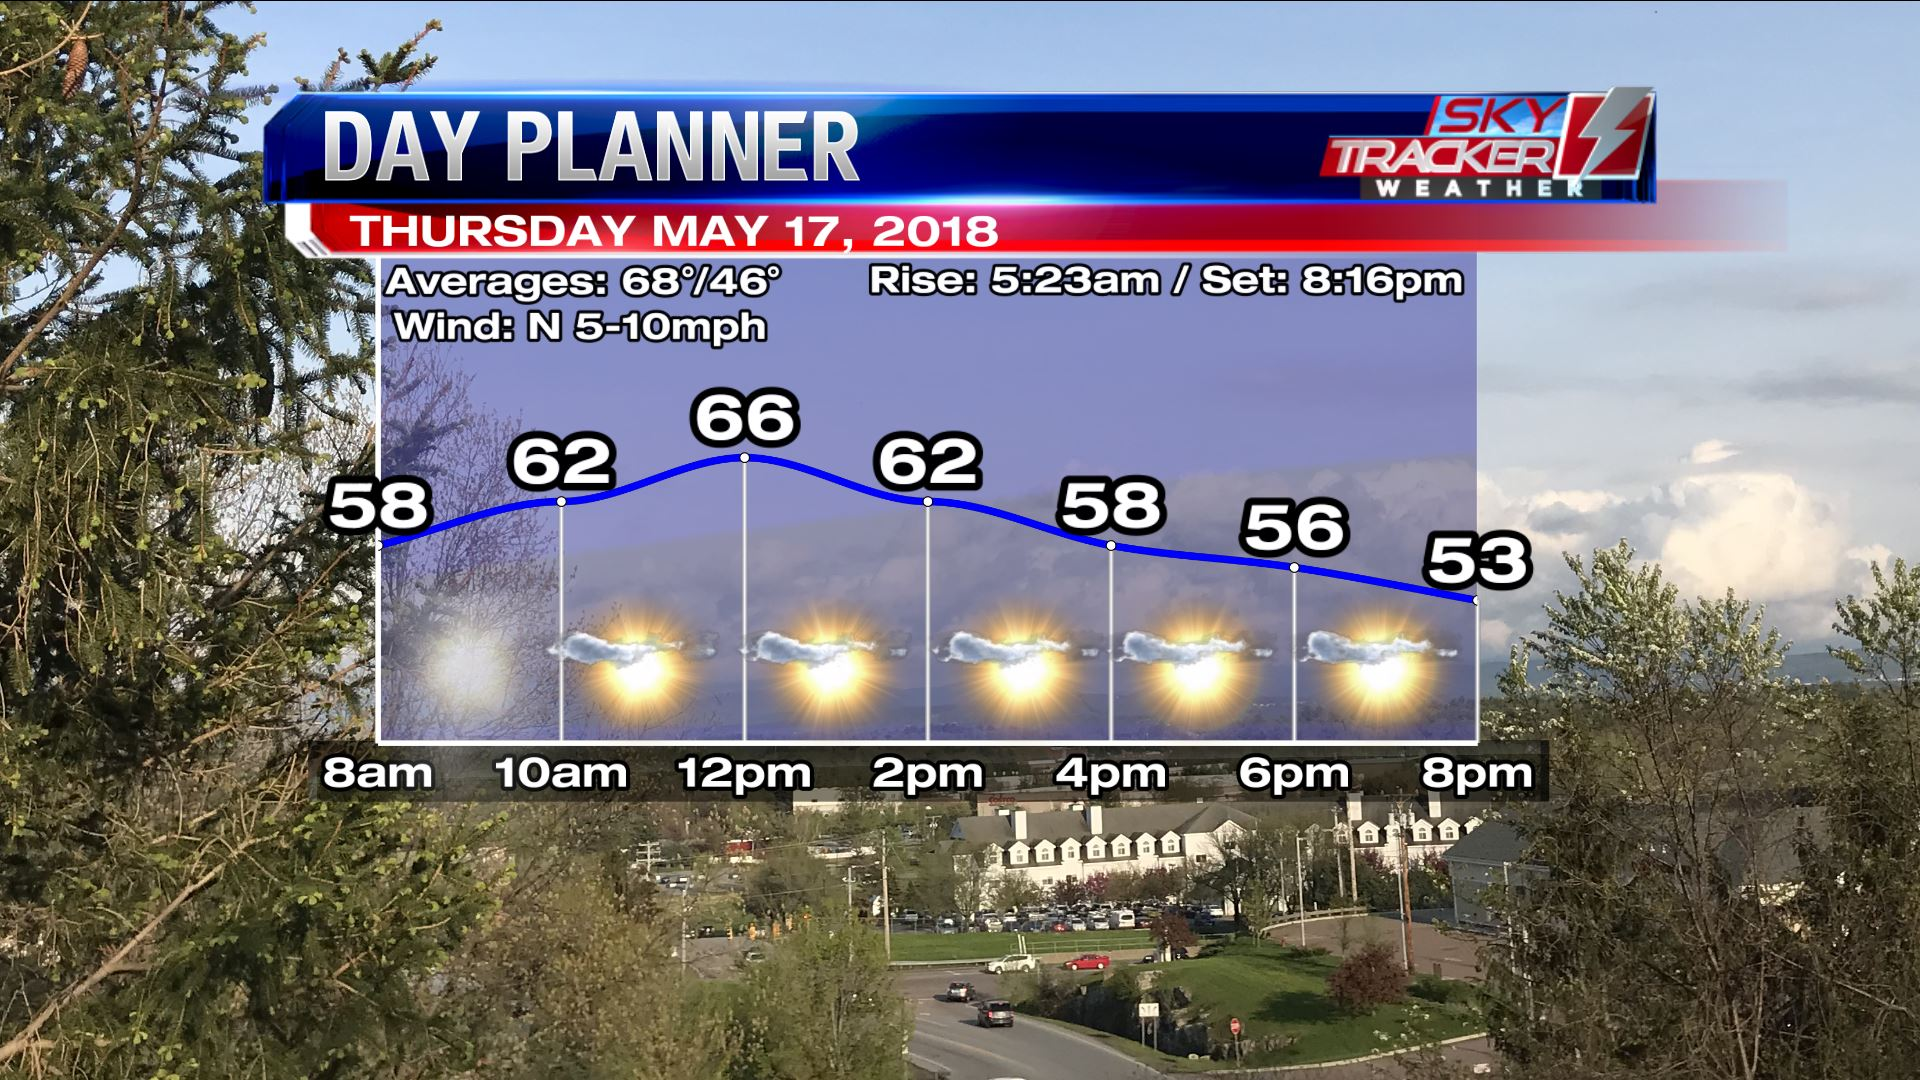 Planner for Thursday May 17 2018